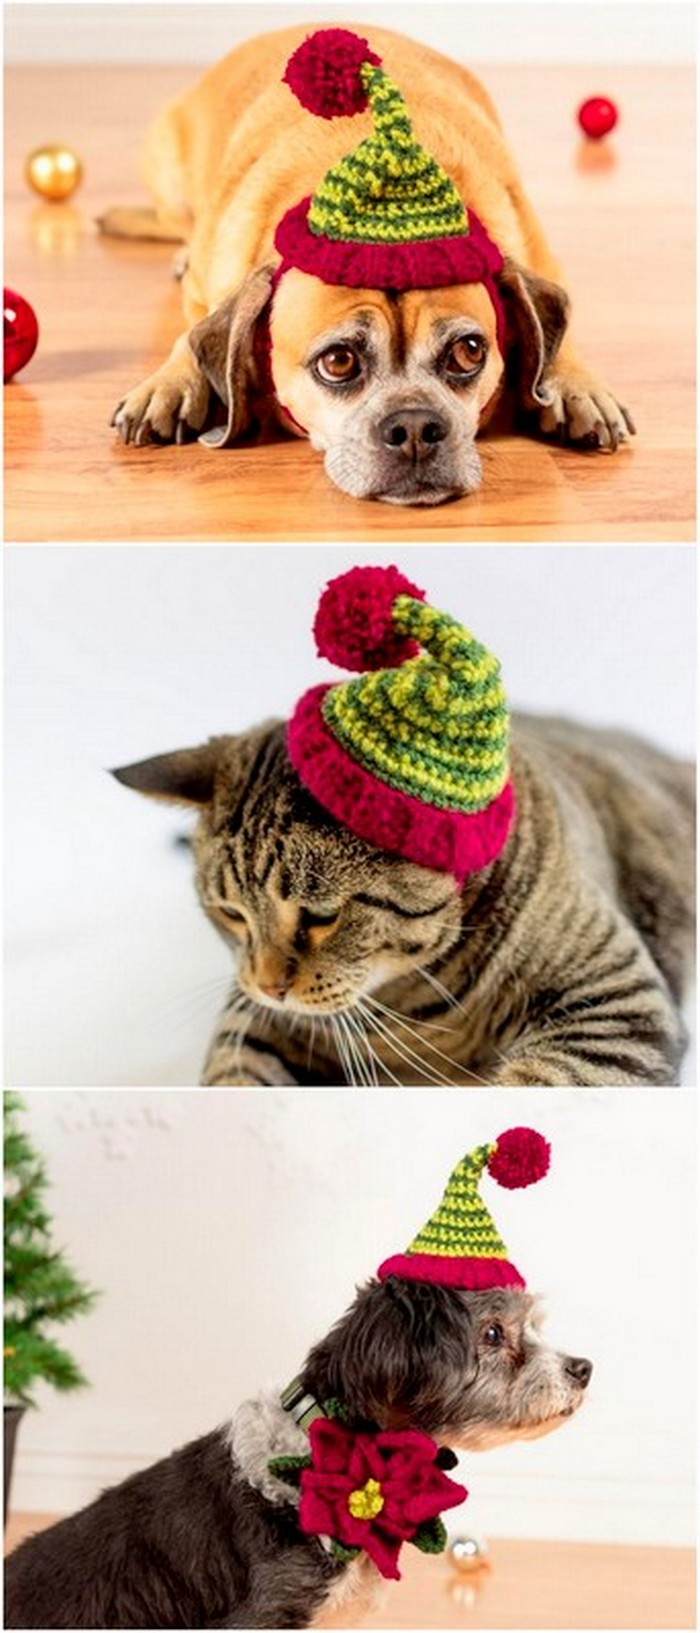 lovely crochet project for pets